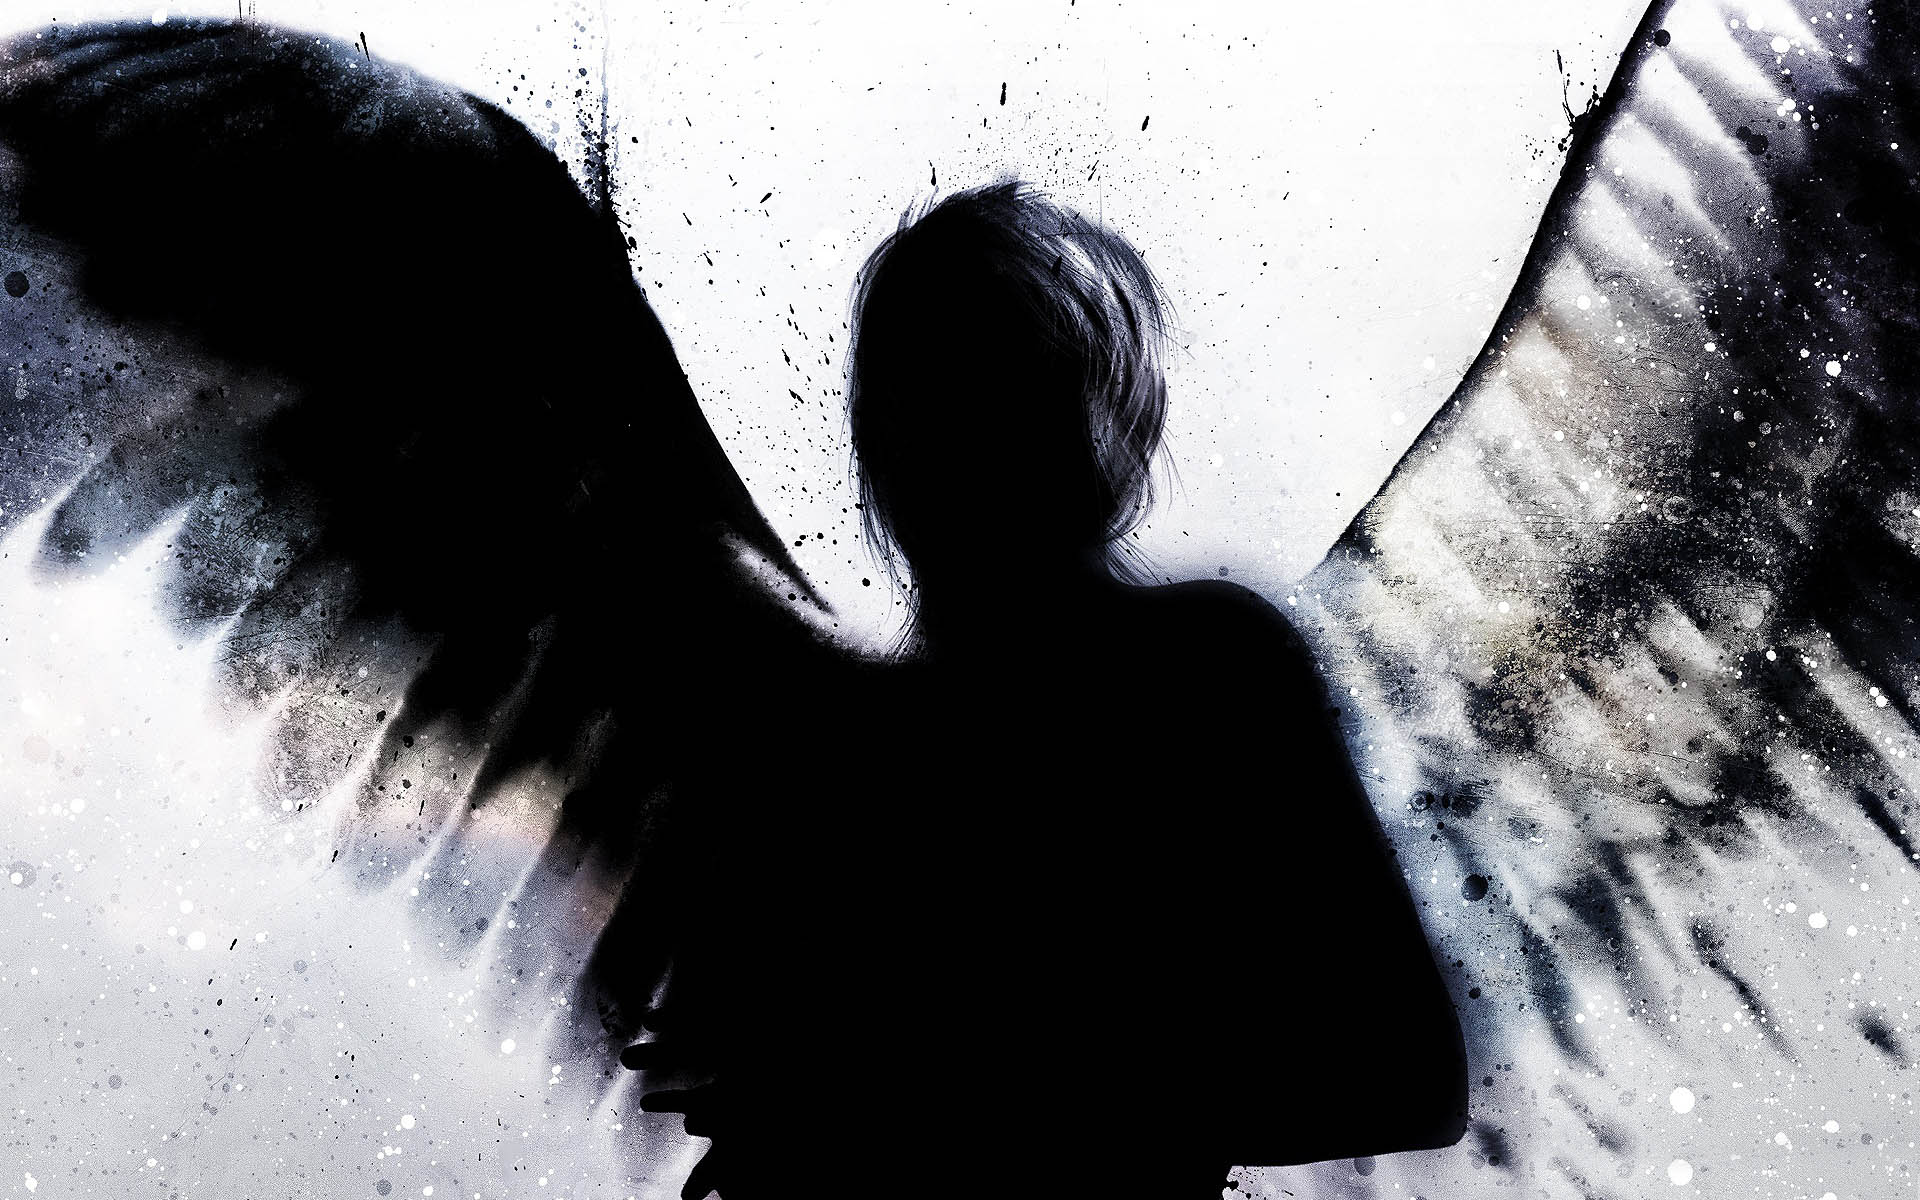 Dark Angel Shadow 521.77 Kb